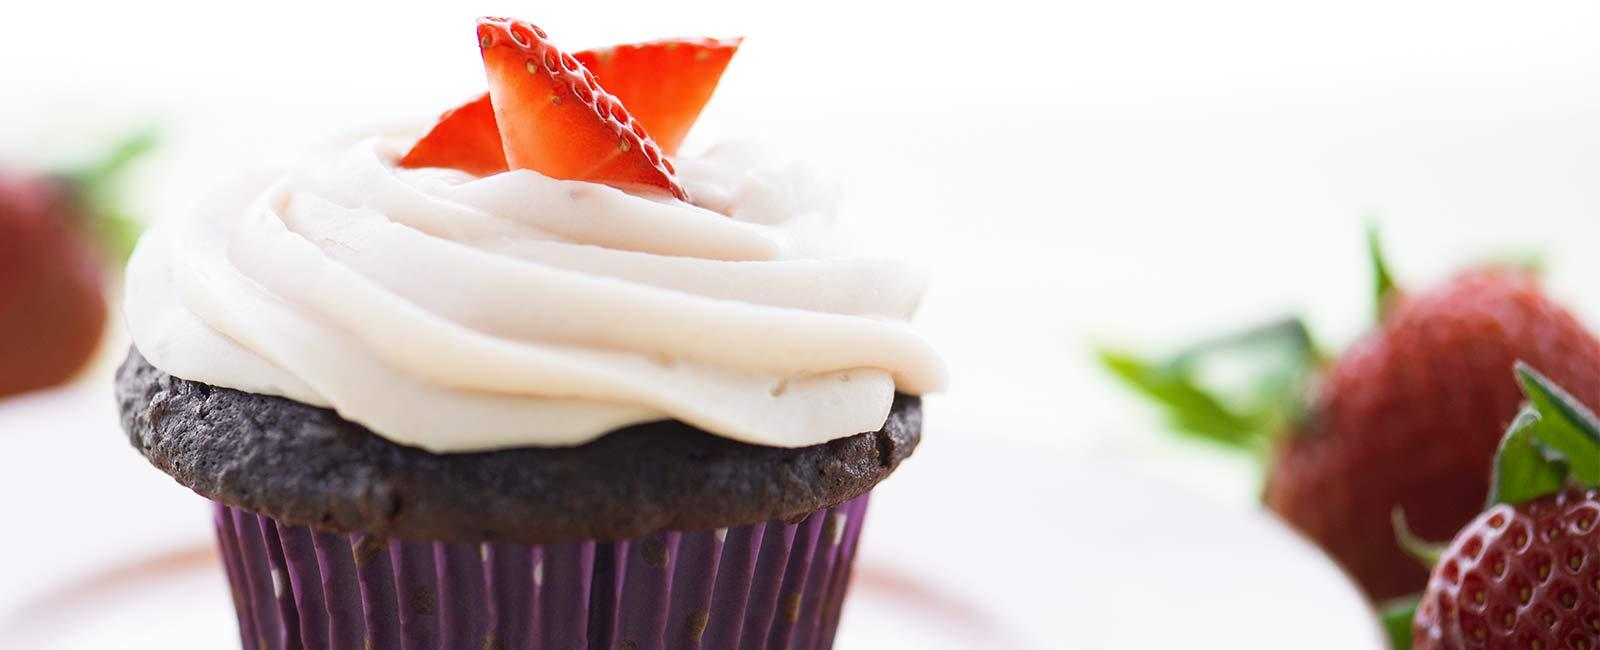 Cupcakes with Strawberry Cream Cheese Frosting